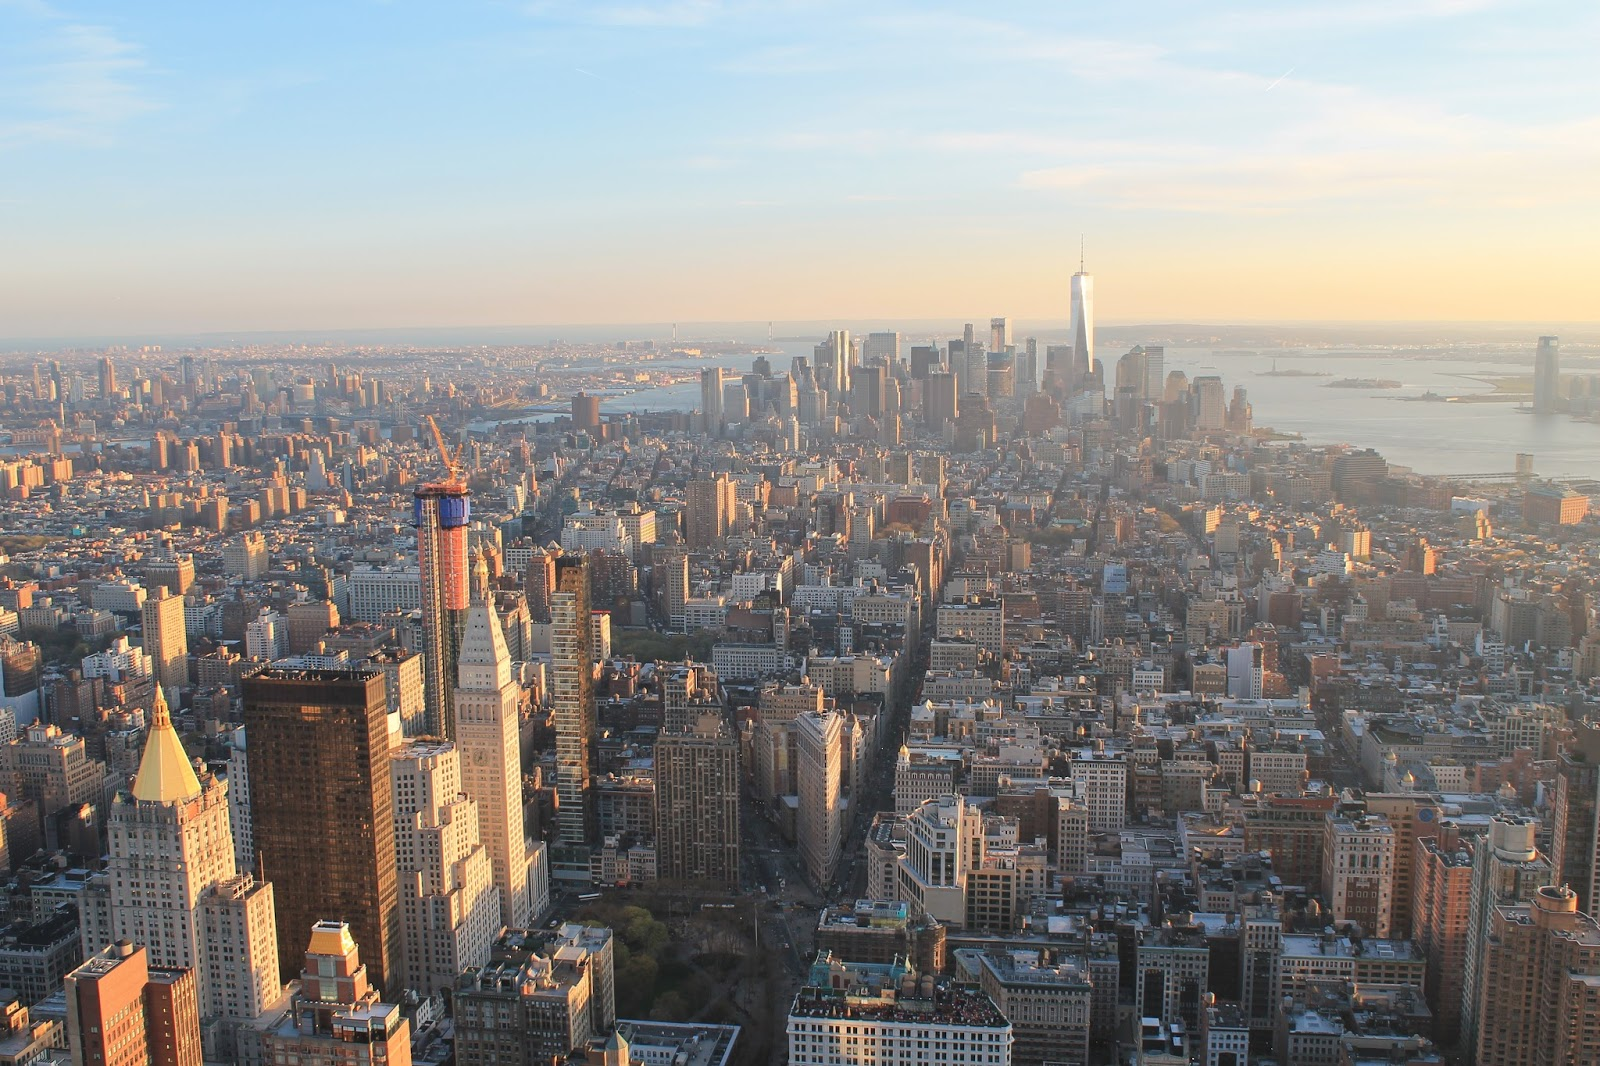 usa, nyc, new york, city, empire state building, top, vue, panorama, panoramique, coucher de soleil, sunshine, soleil, voyage, trip2live, road trip, holidays, airbnb, ceetiz